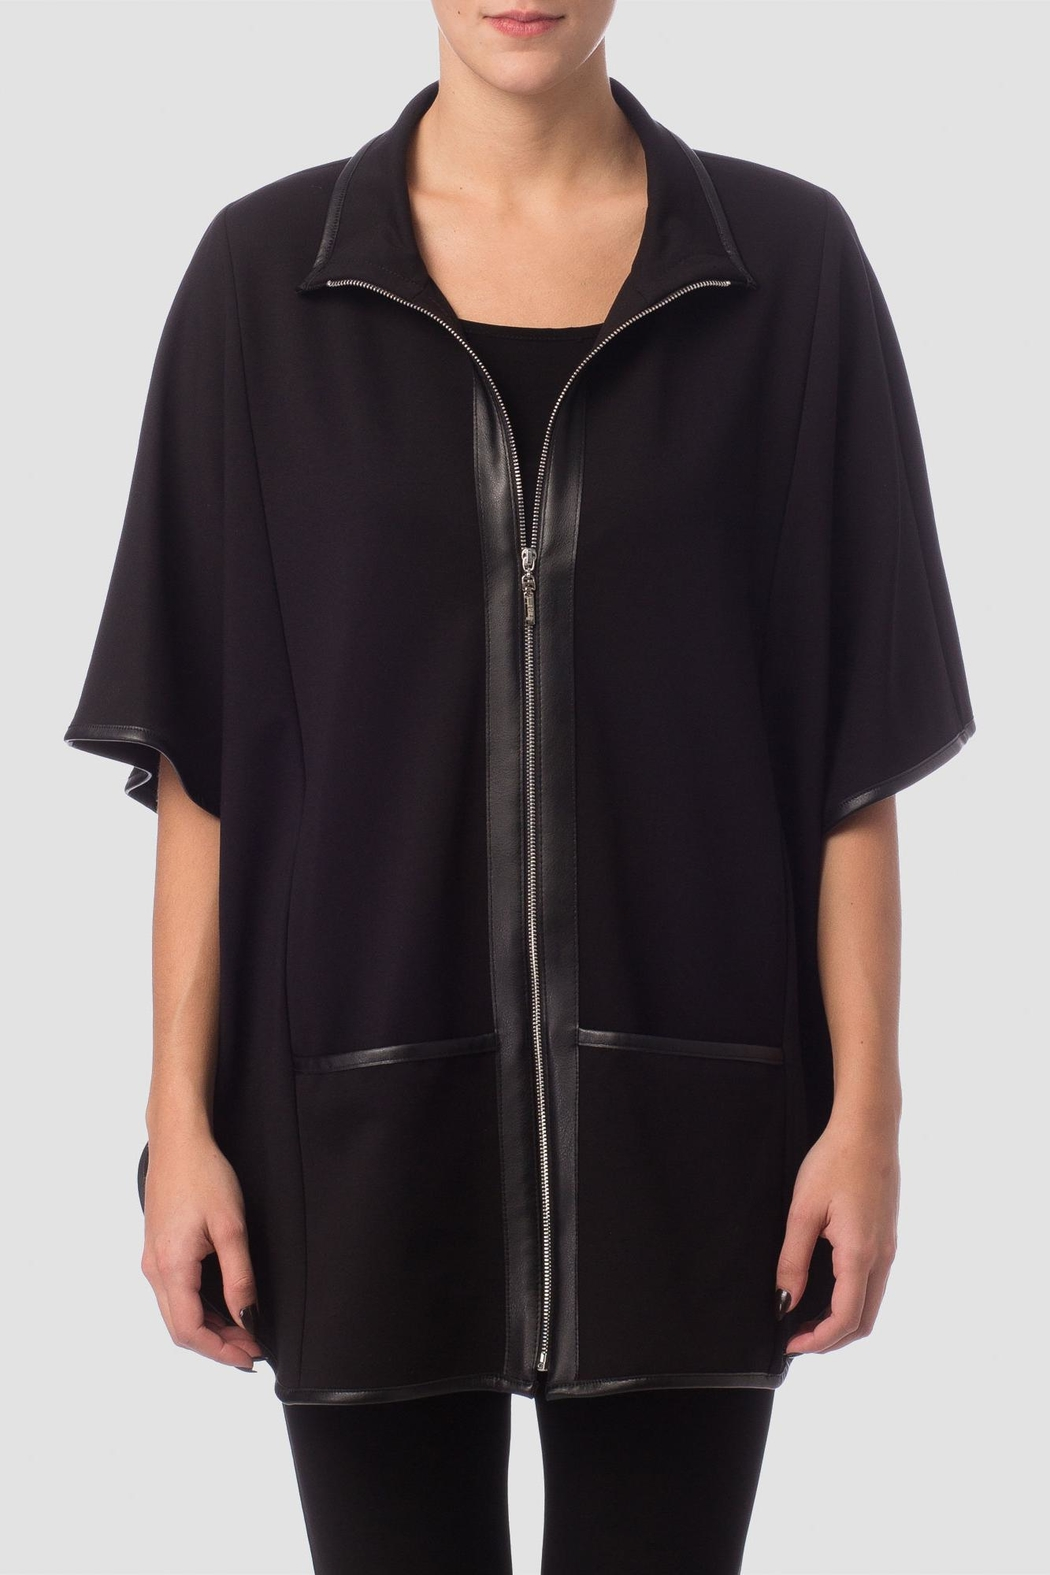 Joseph Ribkoff Black Cape Top - Main Image